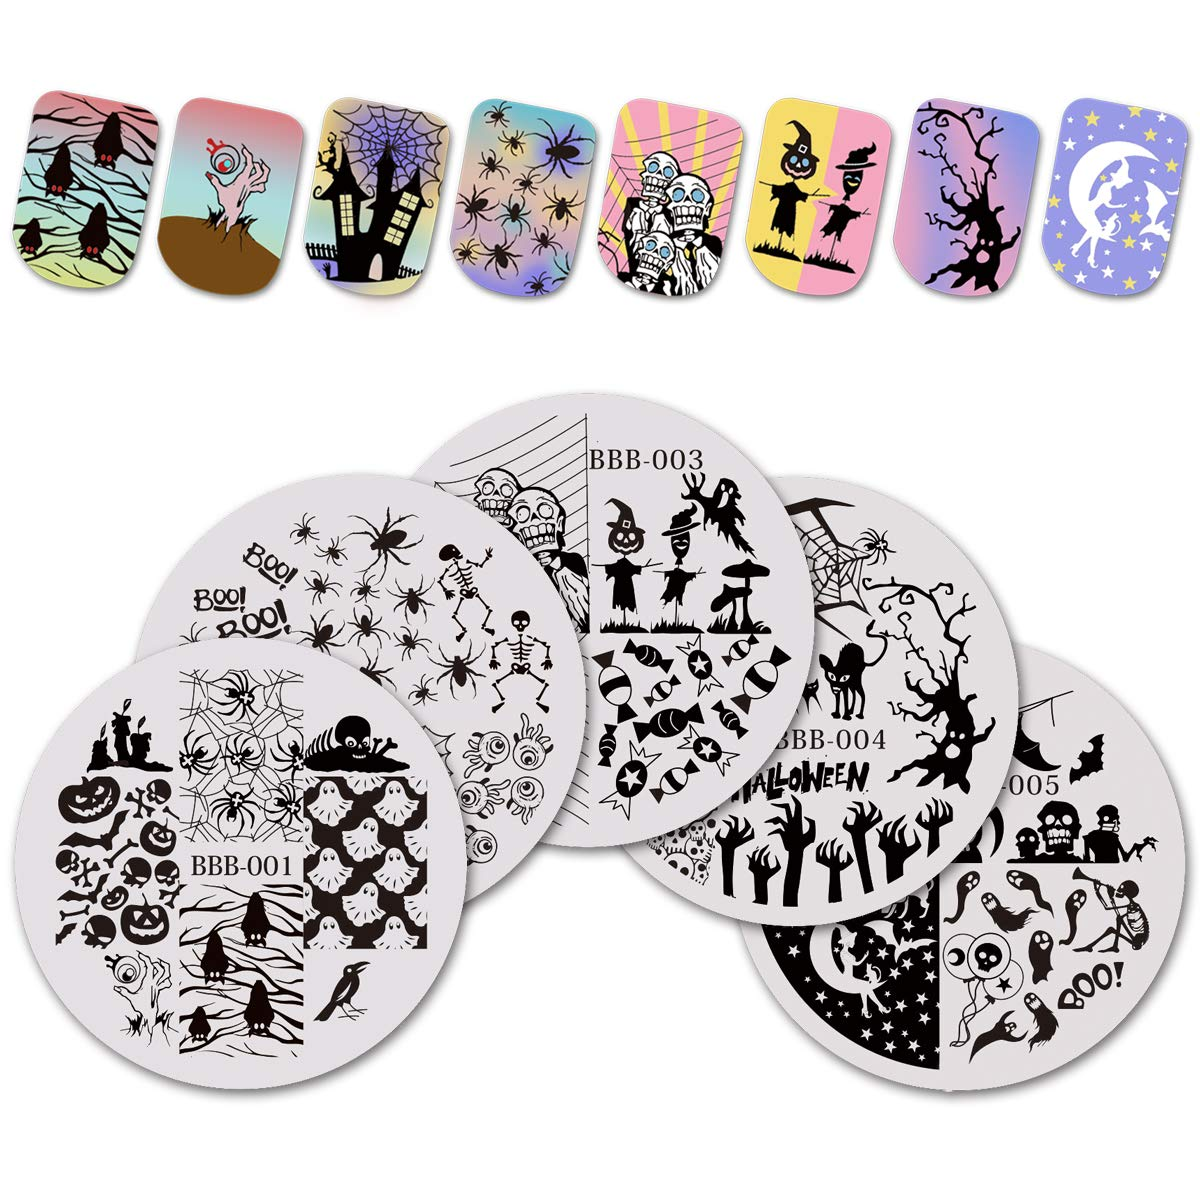 BEAUTYBIGBANG 5 PCS Halloween Nail Art Stamping Plates Set Image Template Stencils Skull Ghost Spider Pumpkin Spider Web Manicure Nail Design (Round)